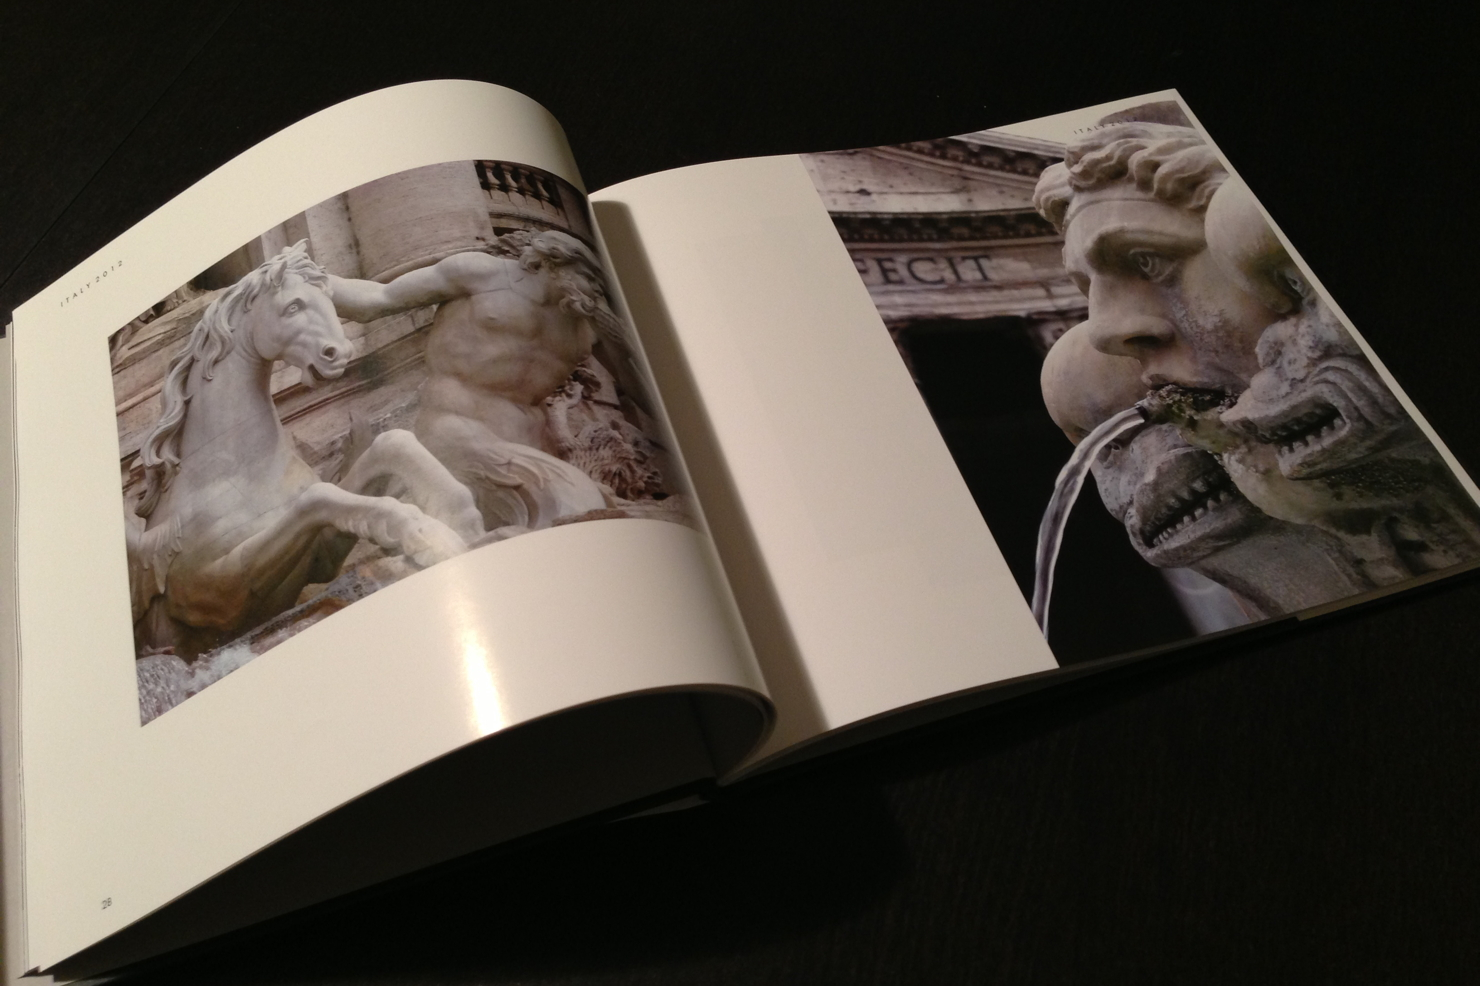 Photo Books from Blurb: A High-Tech Gift Idea with Low-Tech Charm